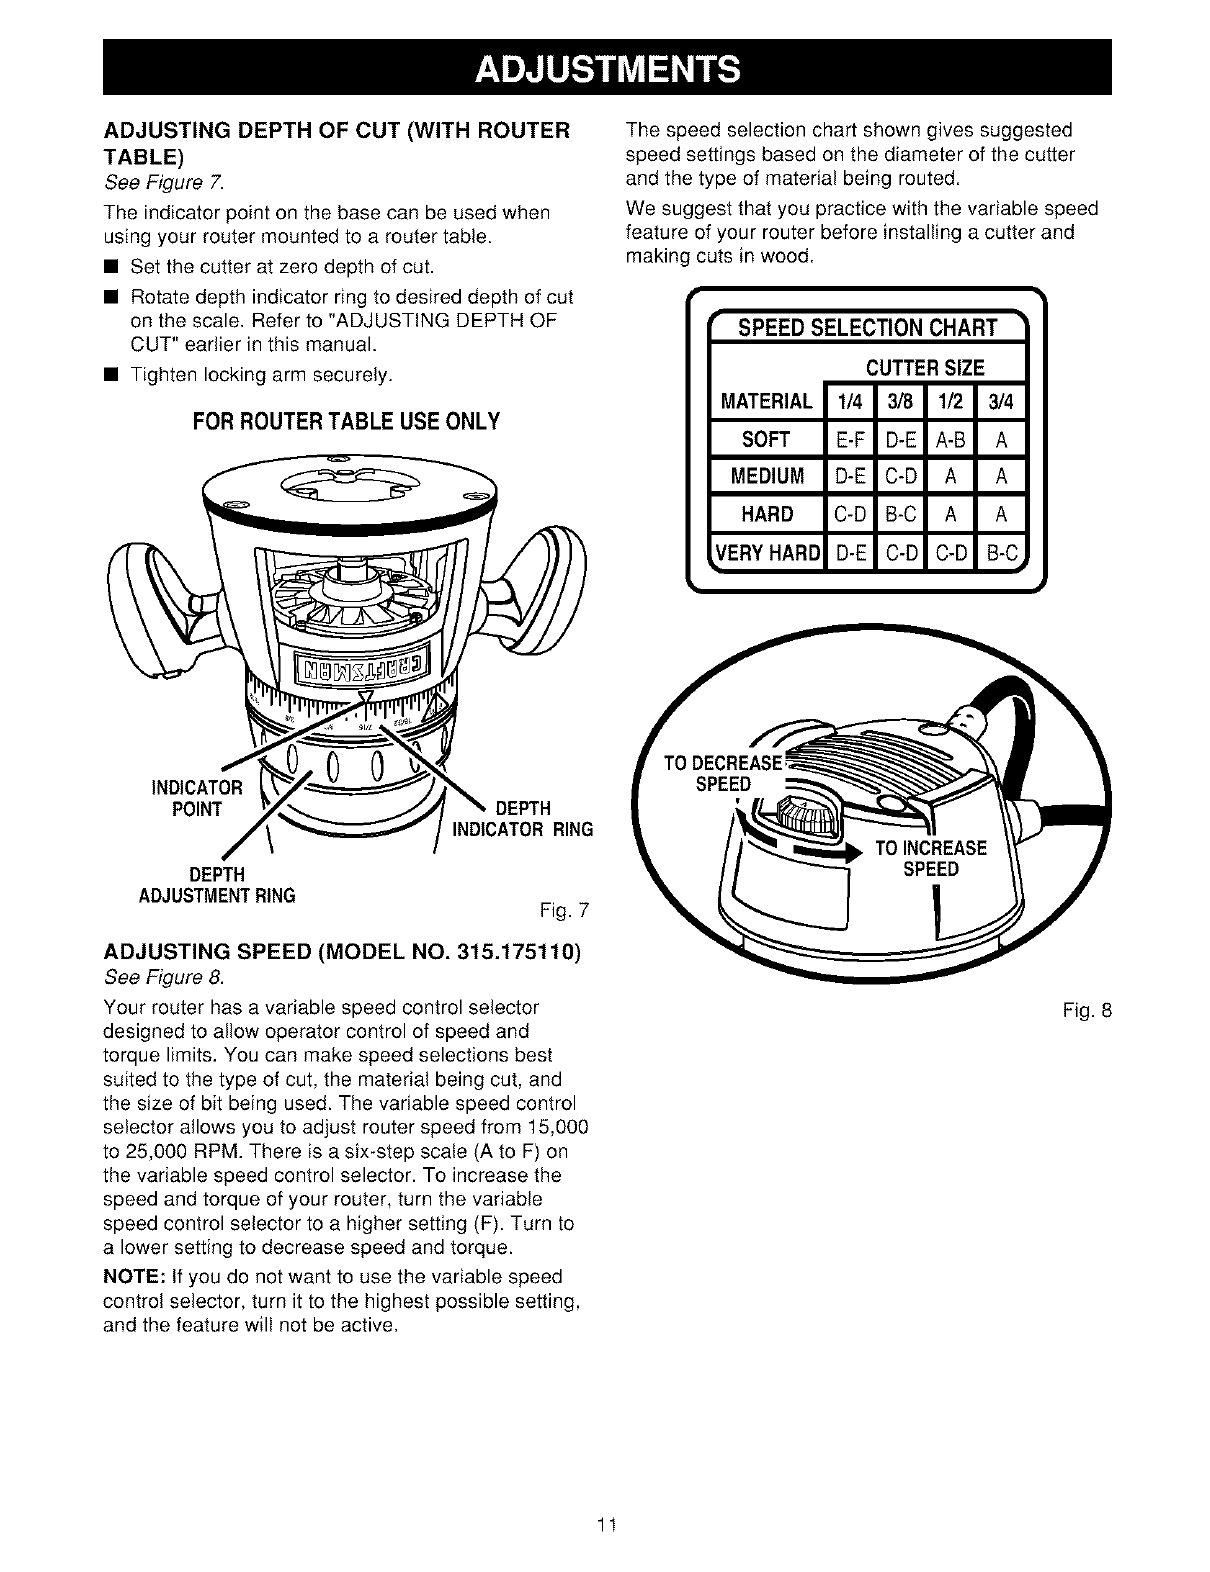 Manual For Craftsman Router 315